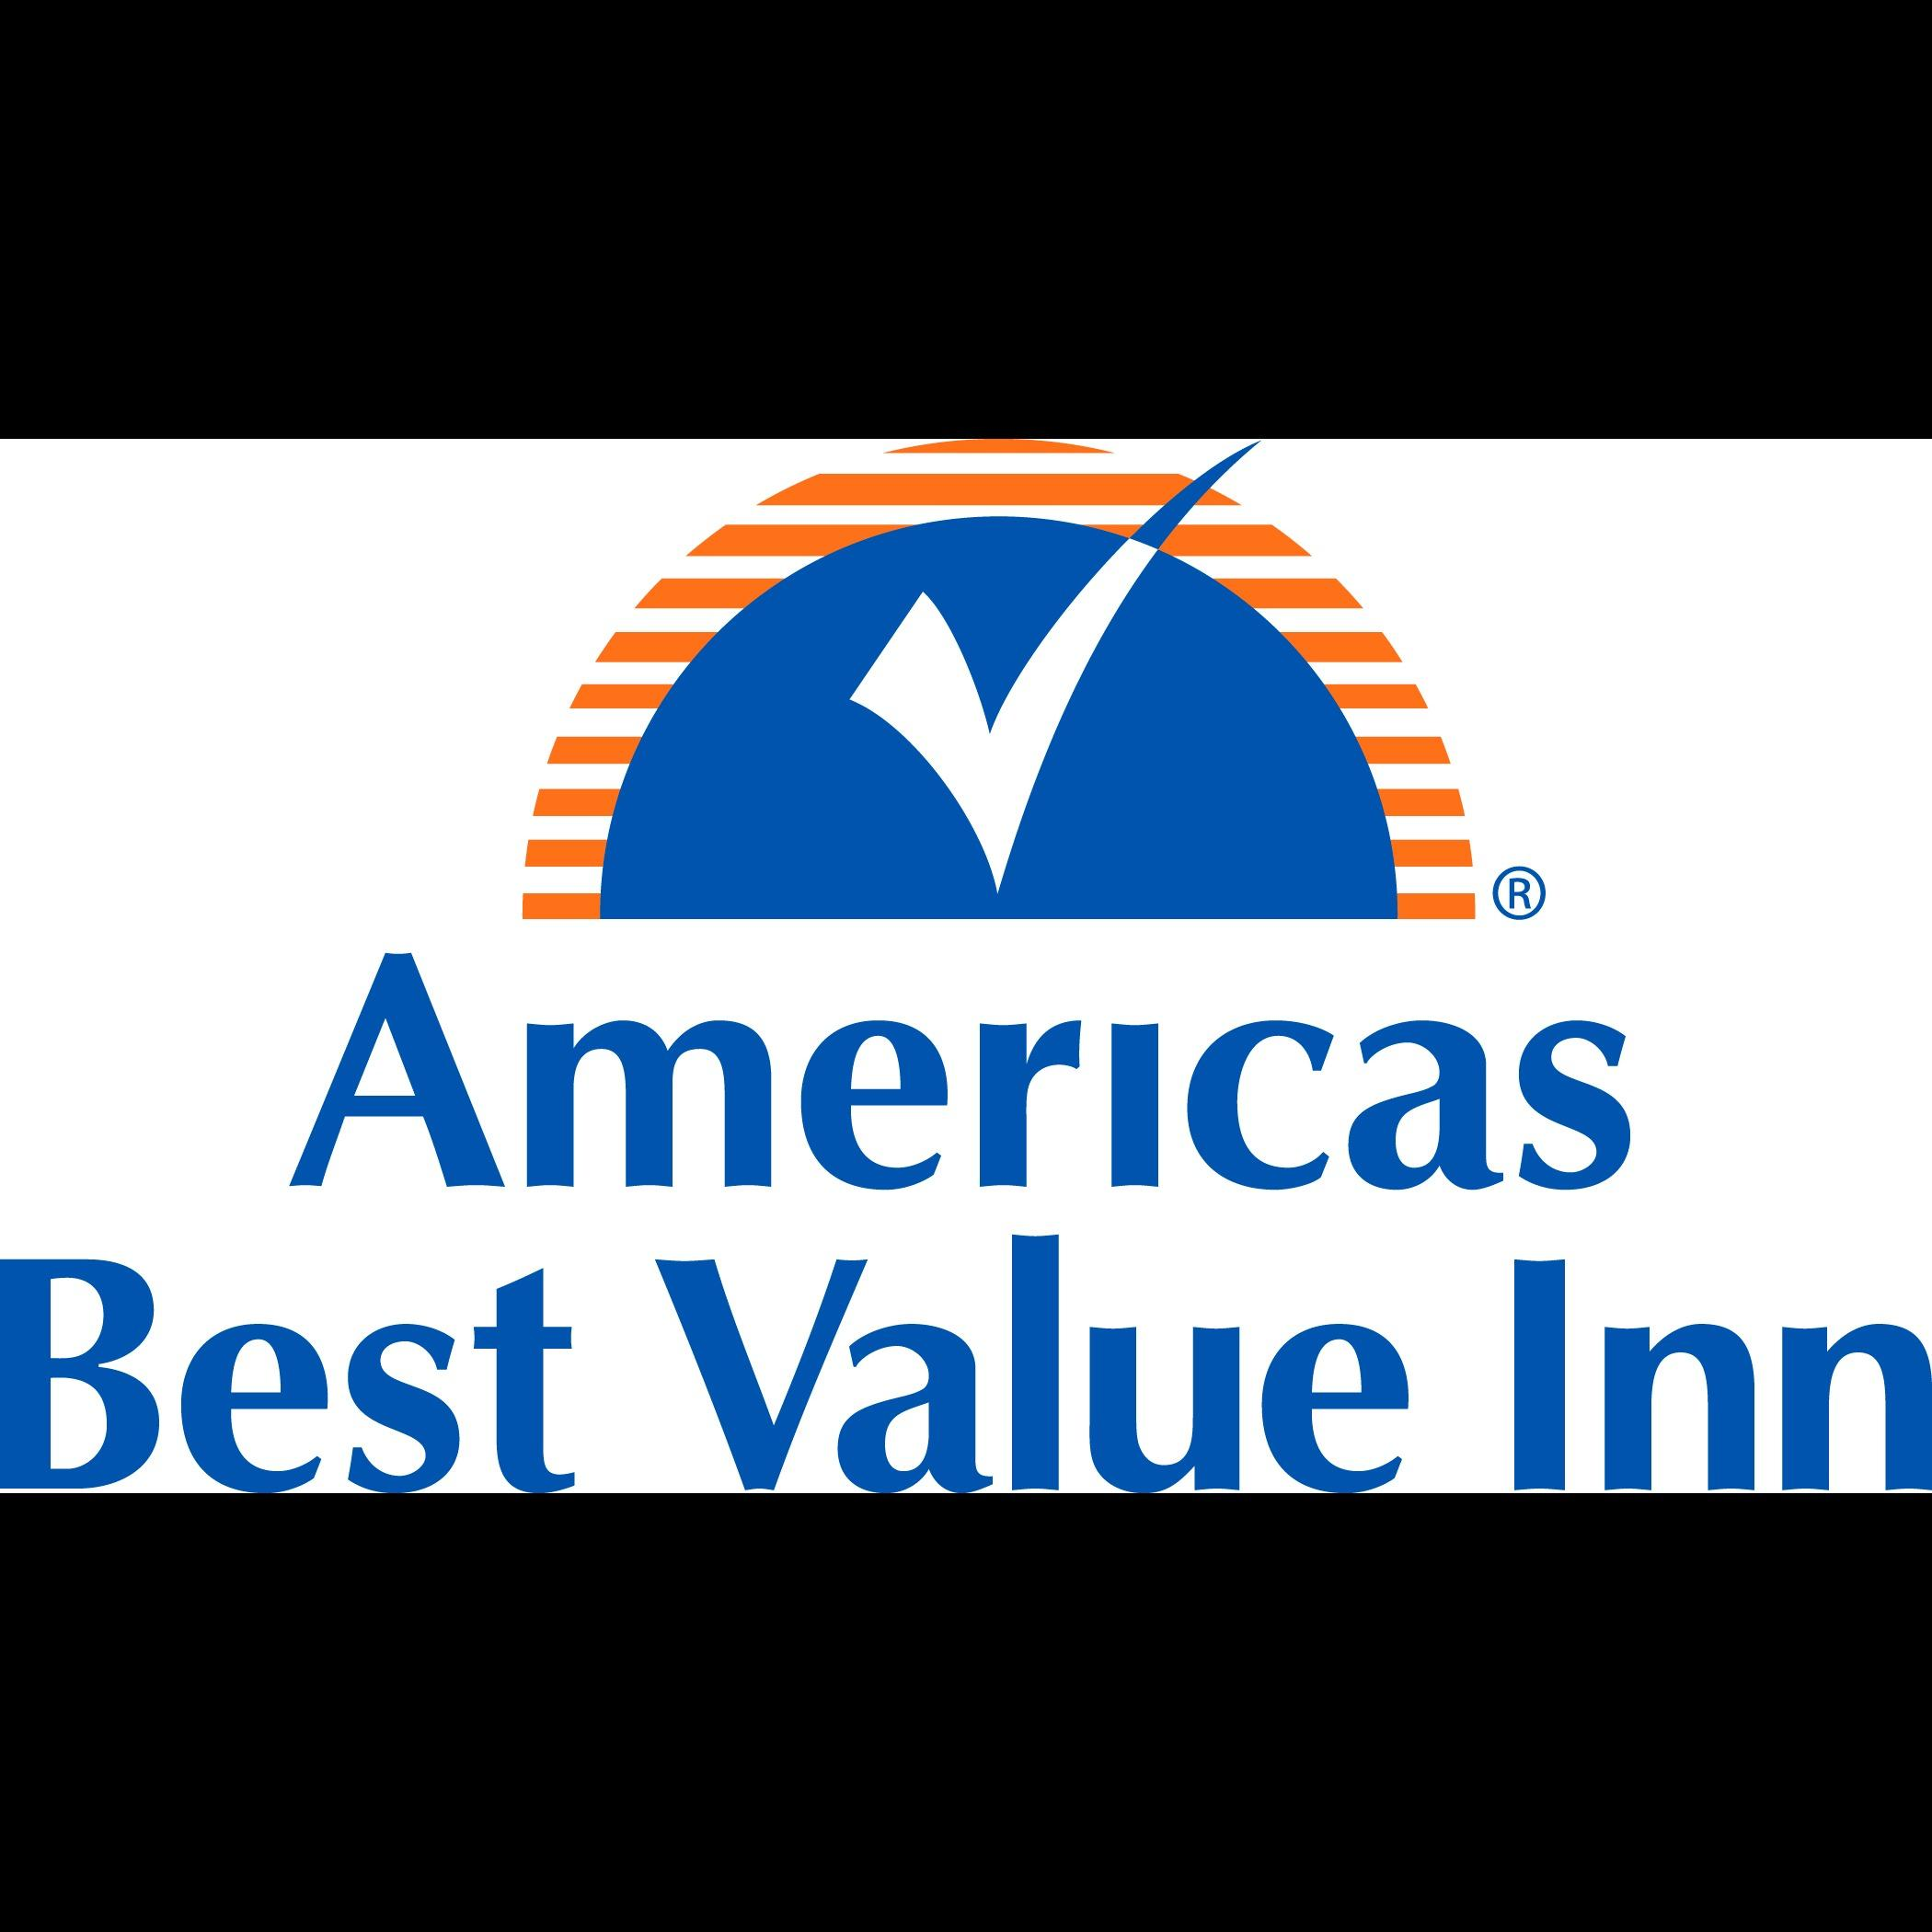 Americas Best Value Inn - Marion, OH - Hotels & Motels